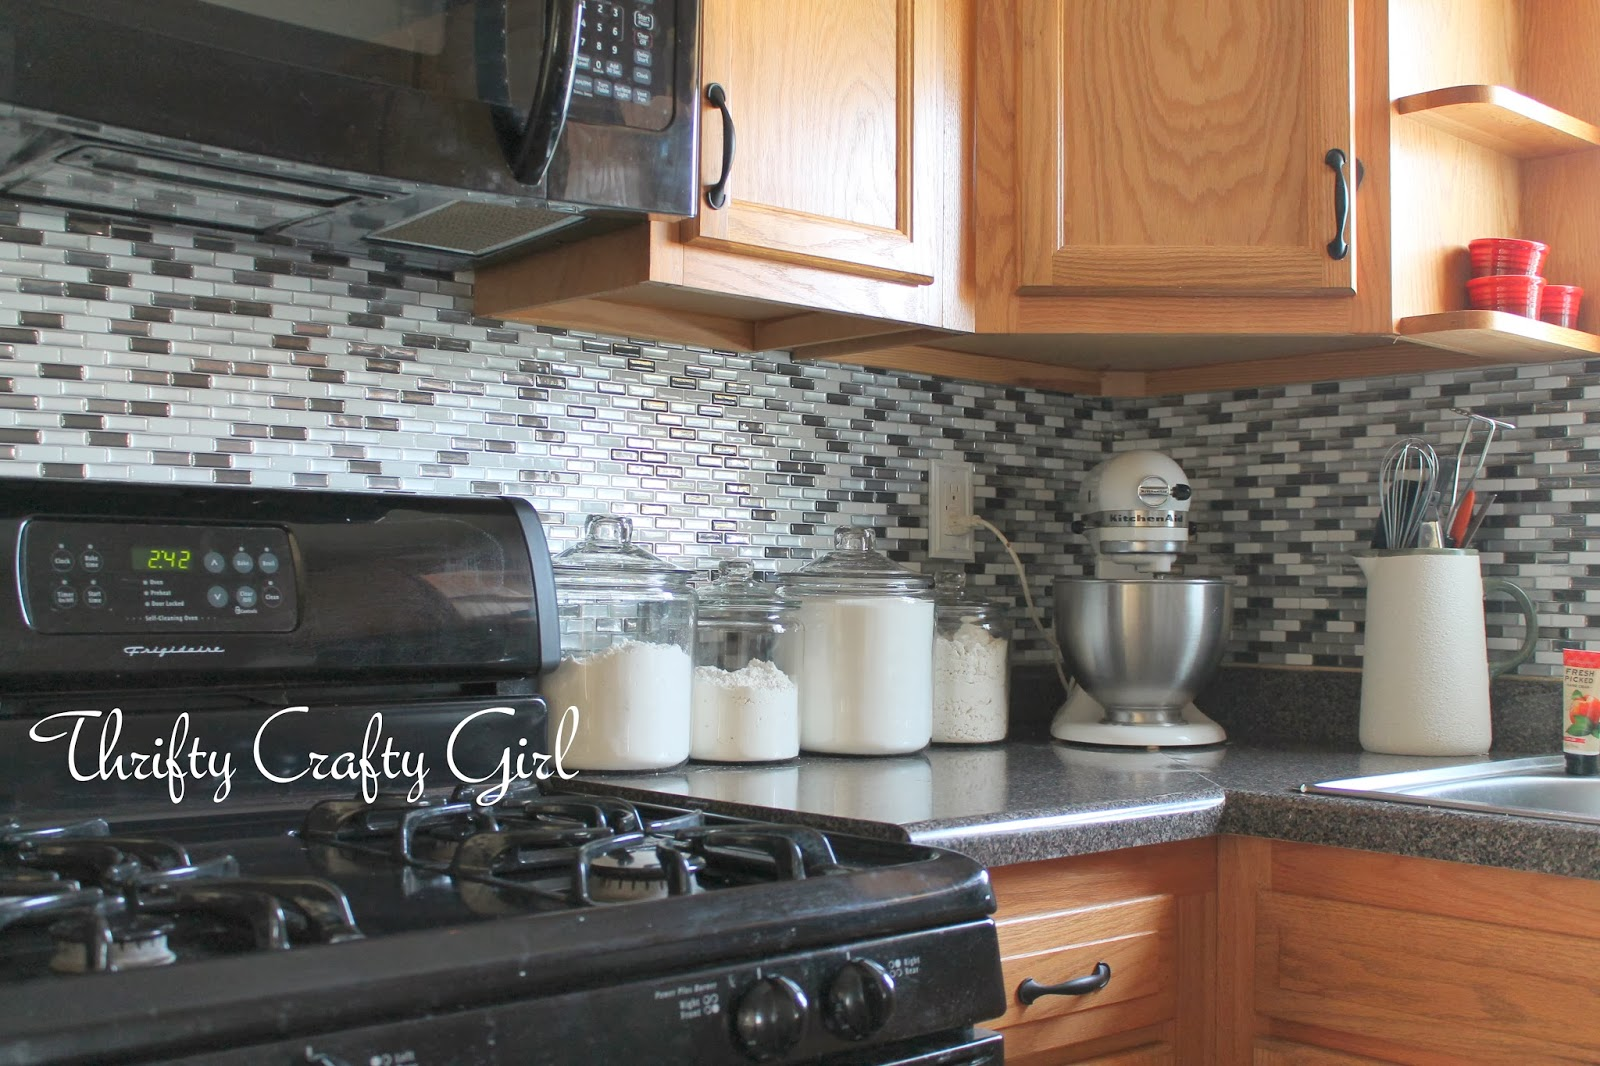 Thrifty crafty girl easy kitchen backsplash with smart tiles and another bonus these are removable take a hair dryer to the corner of a tile and heat it up it will peel off if you decide youre over dailygadgetfo Images